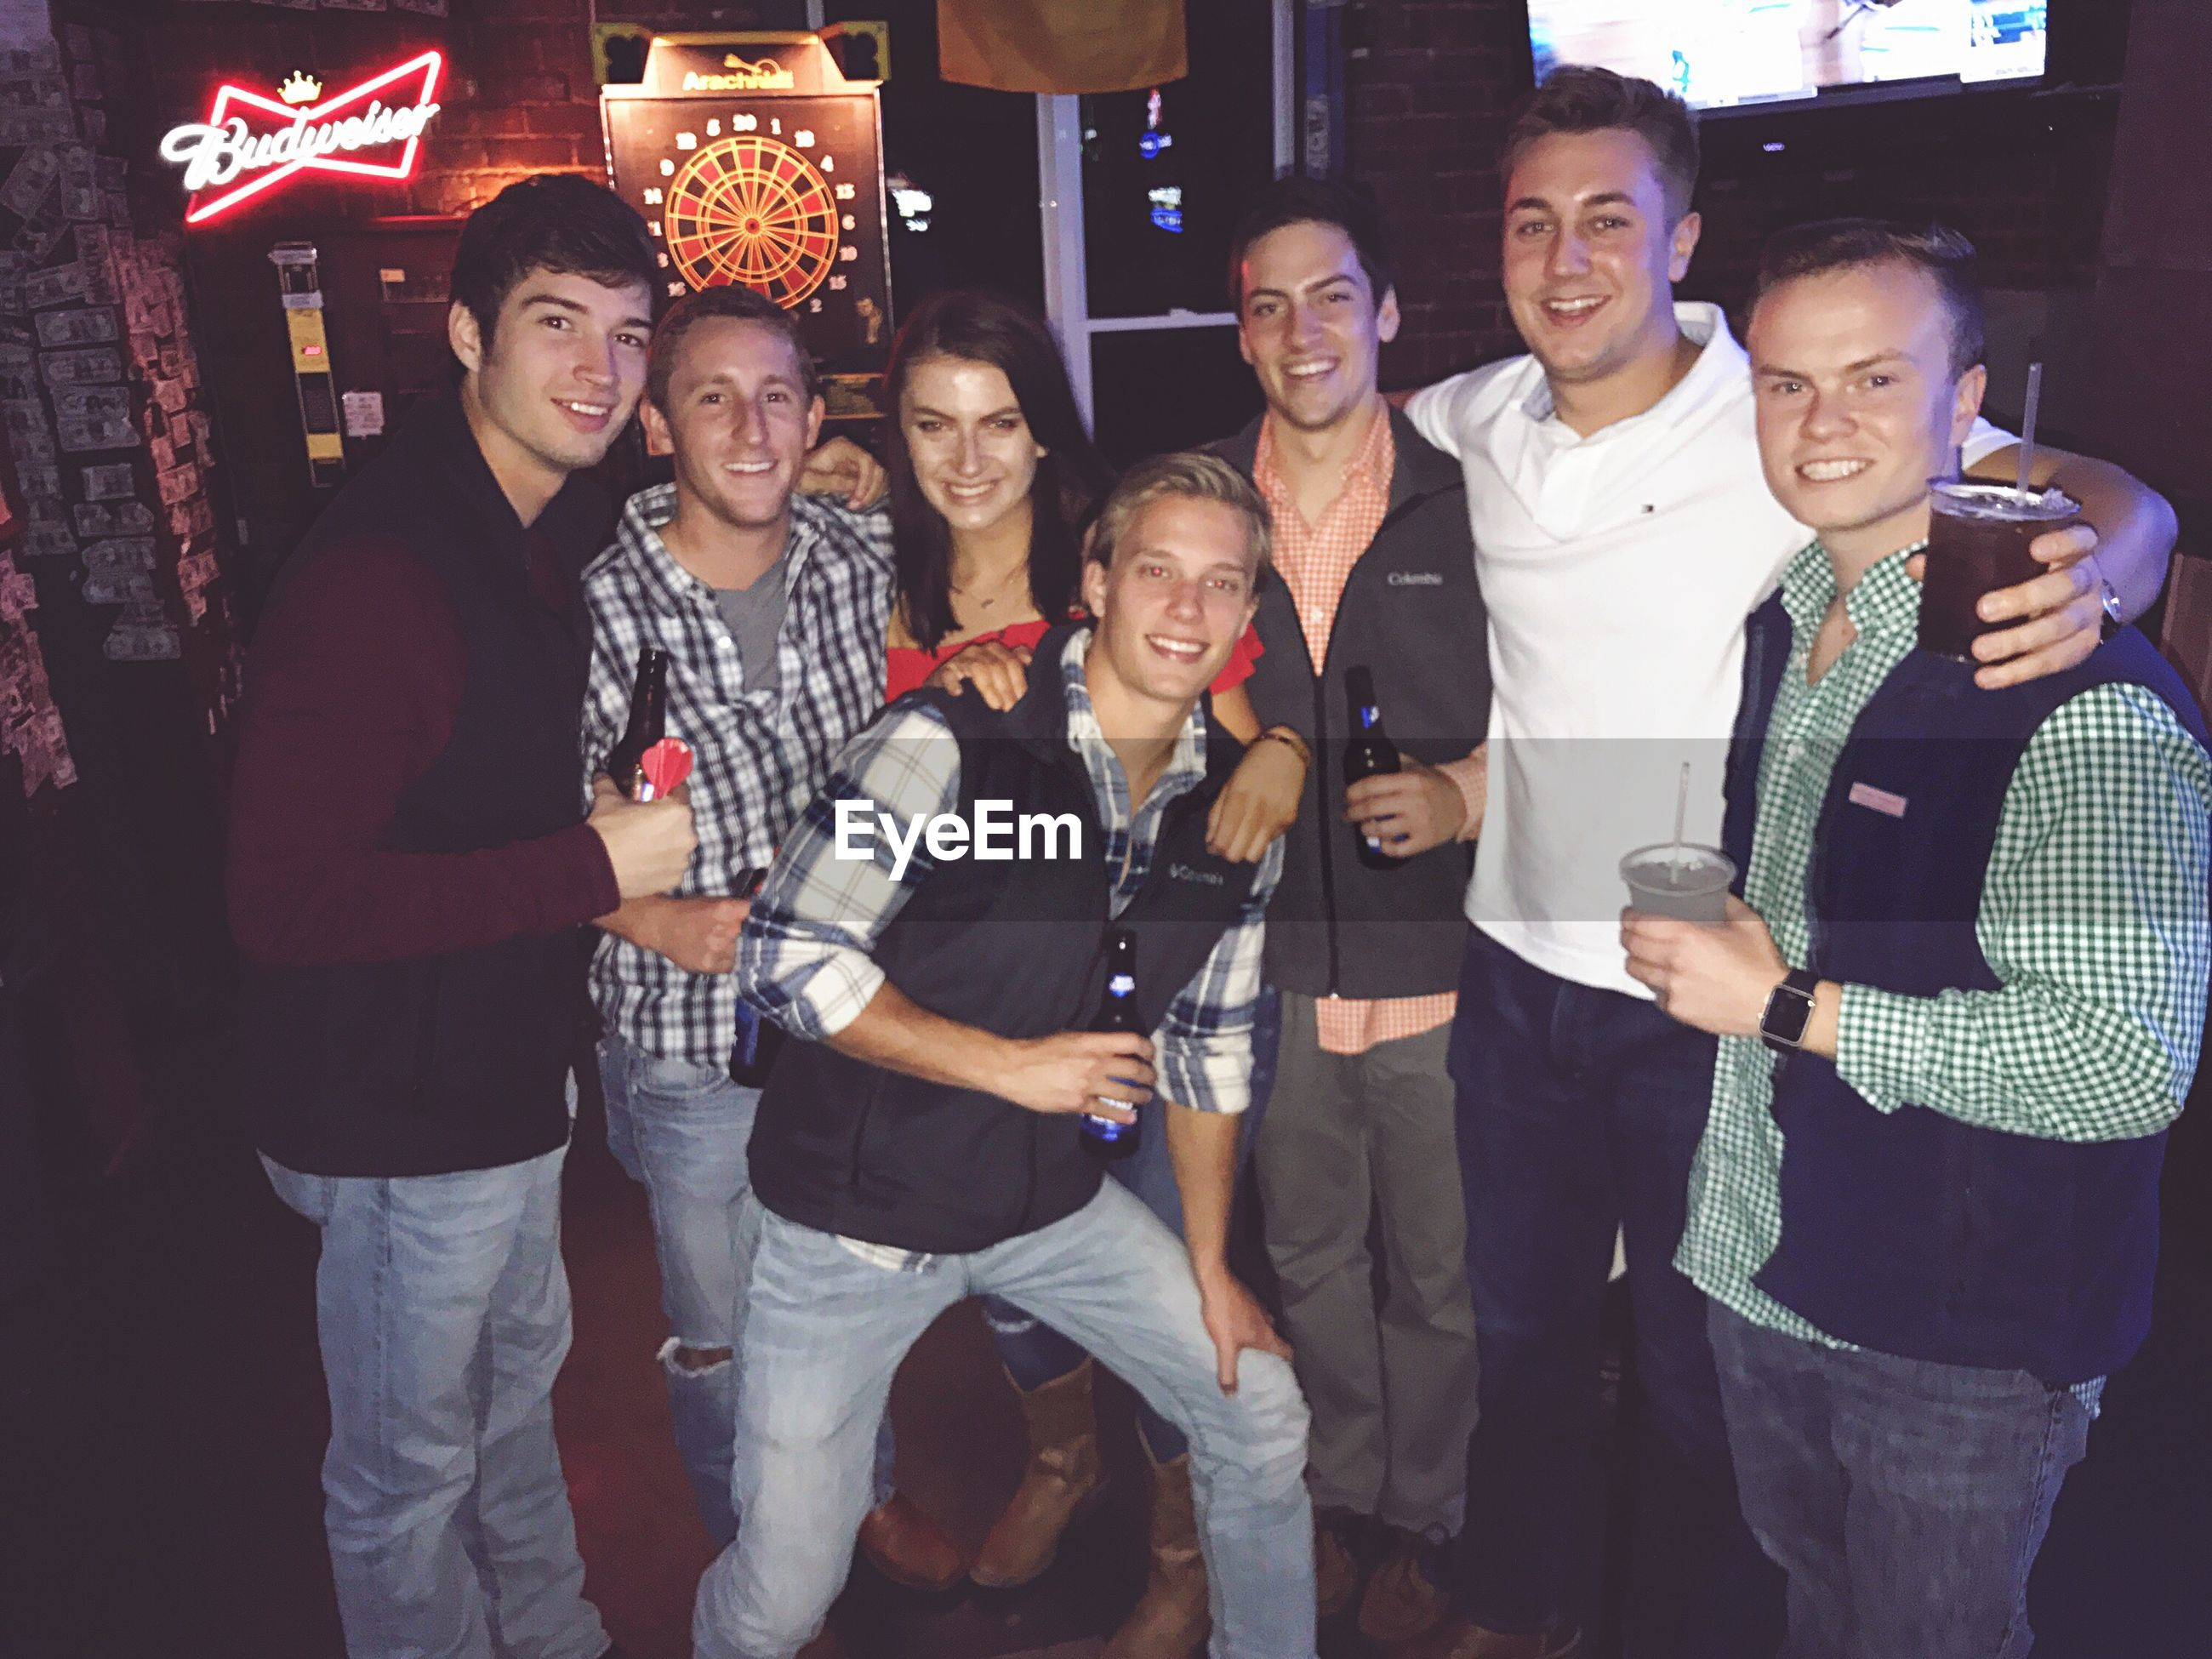 night, smiling, togetherness, enjoyment, young men, celebration, friendship, young adult, nightlife, standing, men, leisure activity, happiness, illuminated, lifestyles, young women, portrait, nightclub, party - social event, outdoors, adult, people